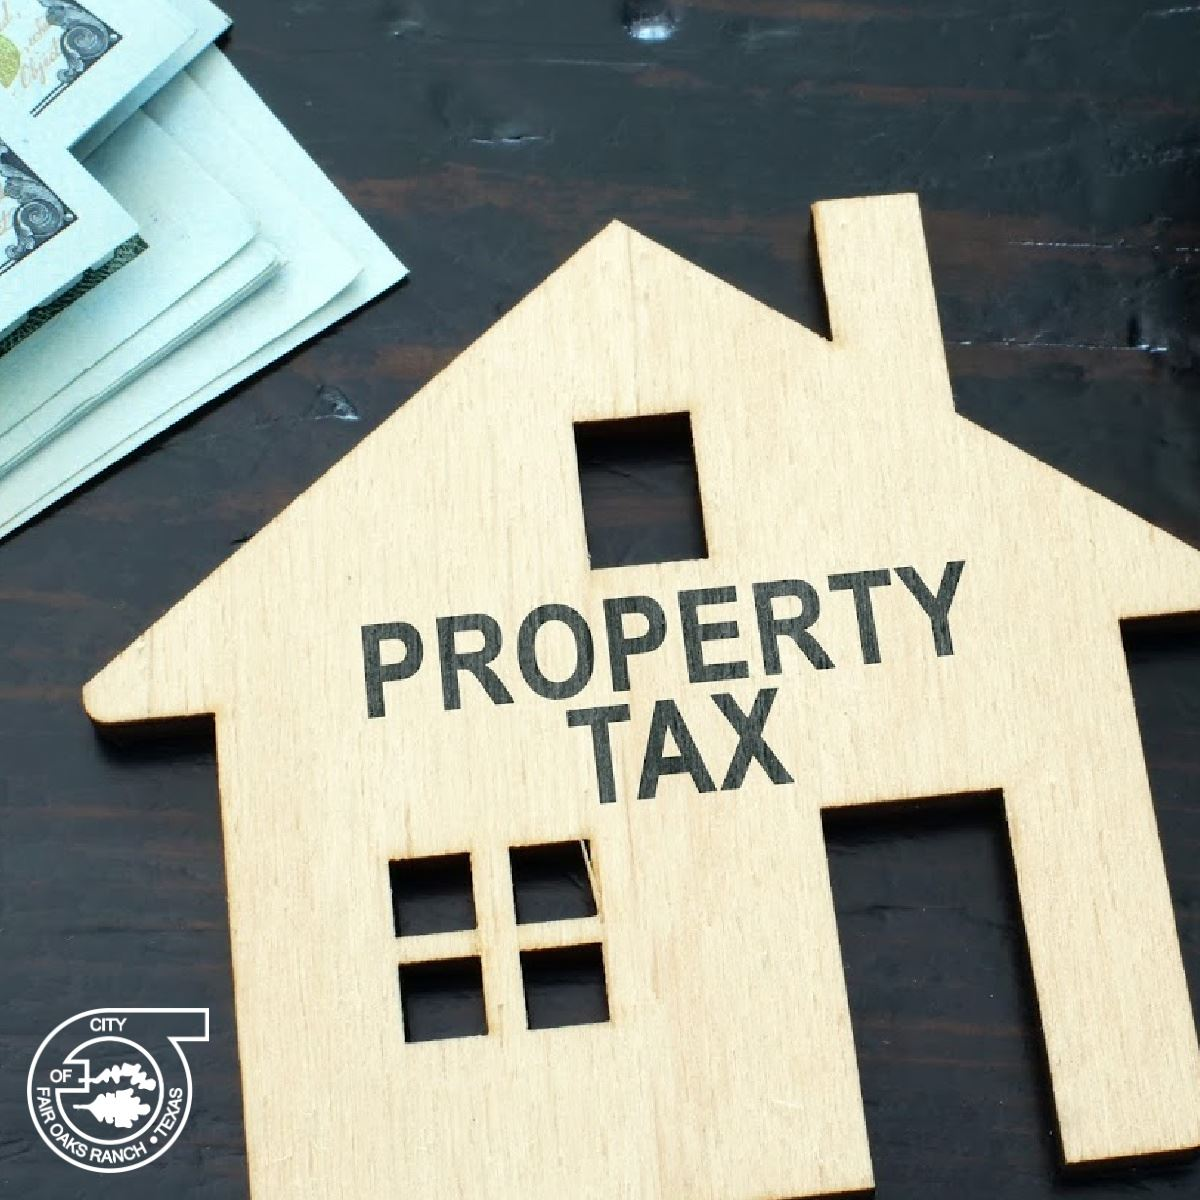 Property Tax FB